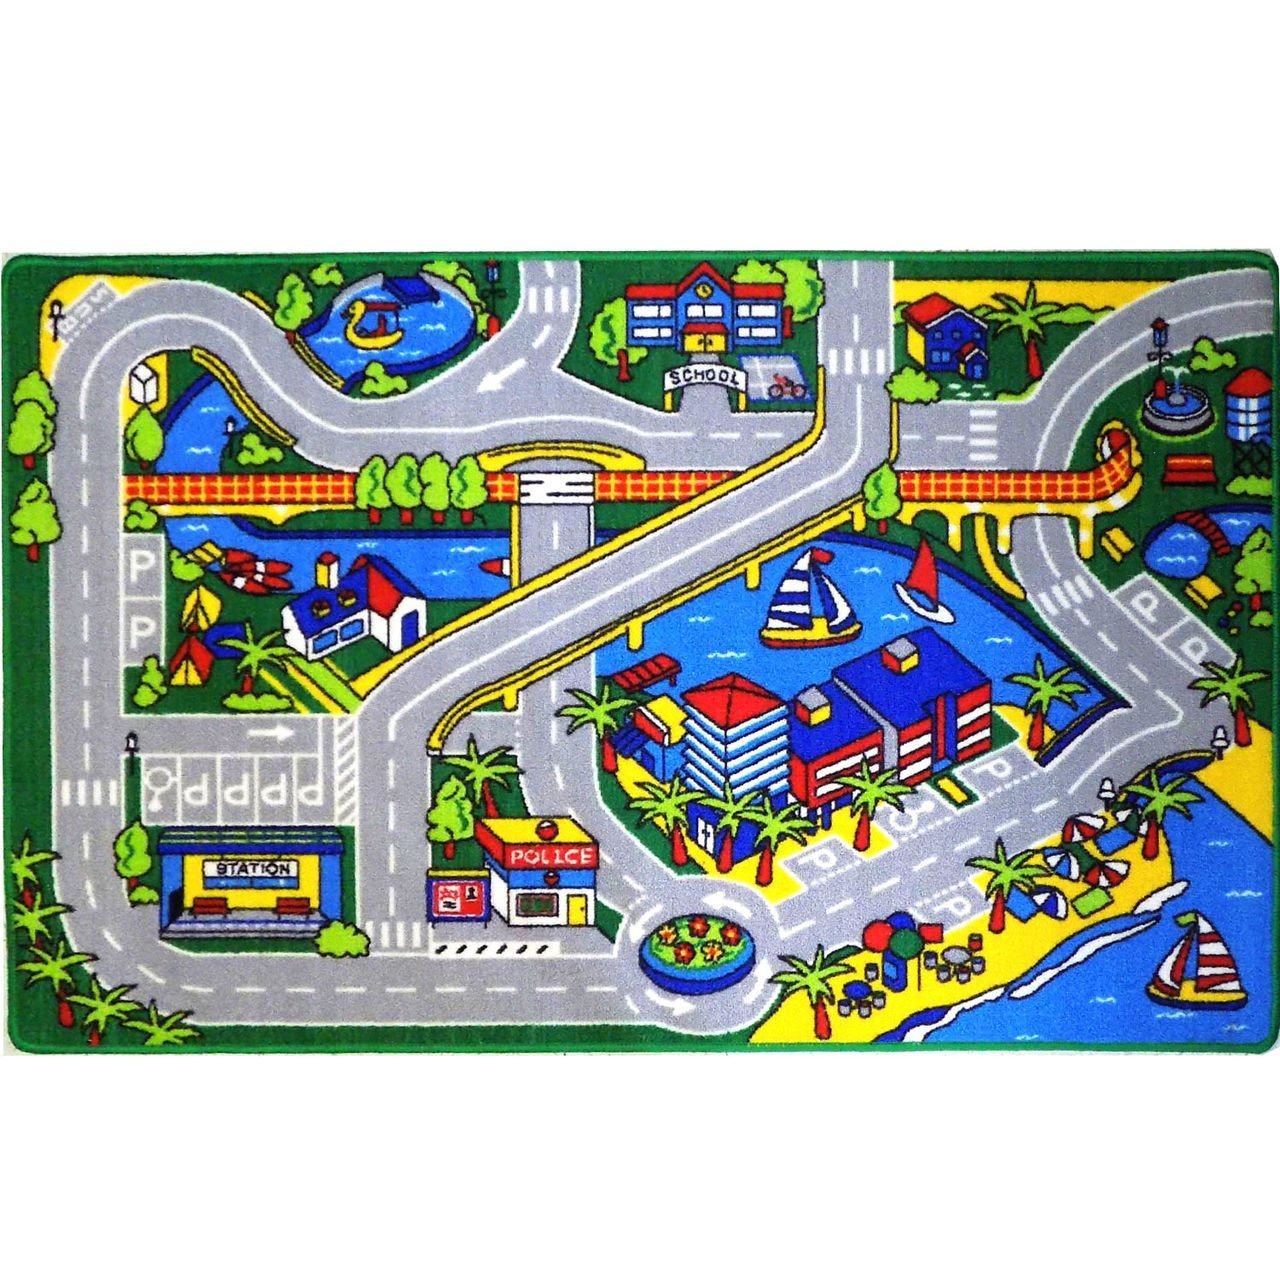 Kids Rug Harbor Map 5 X 7 Childrens Fun Learning Carpet 59 X 82